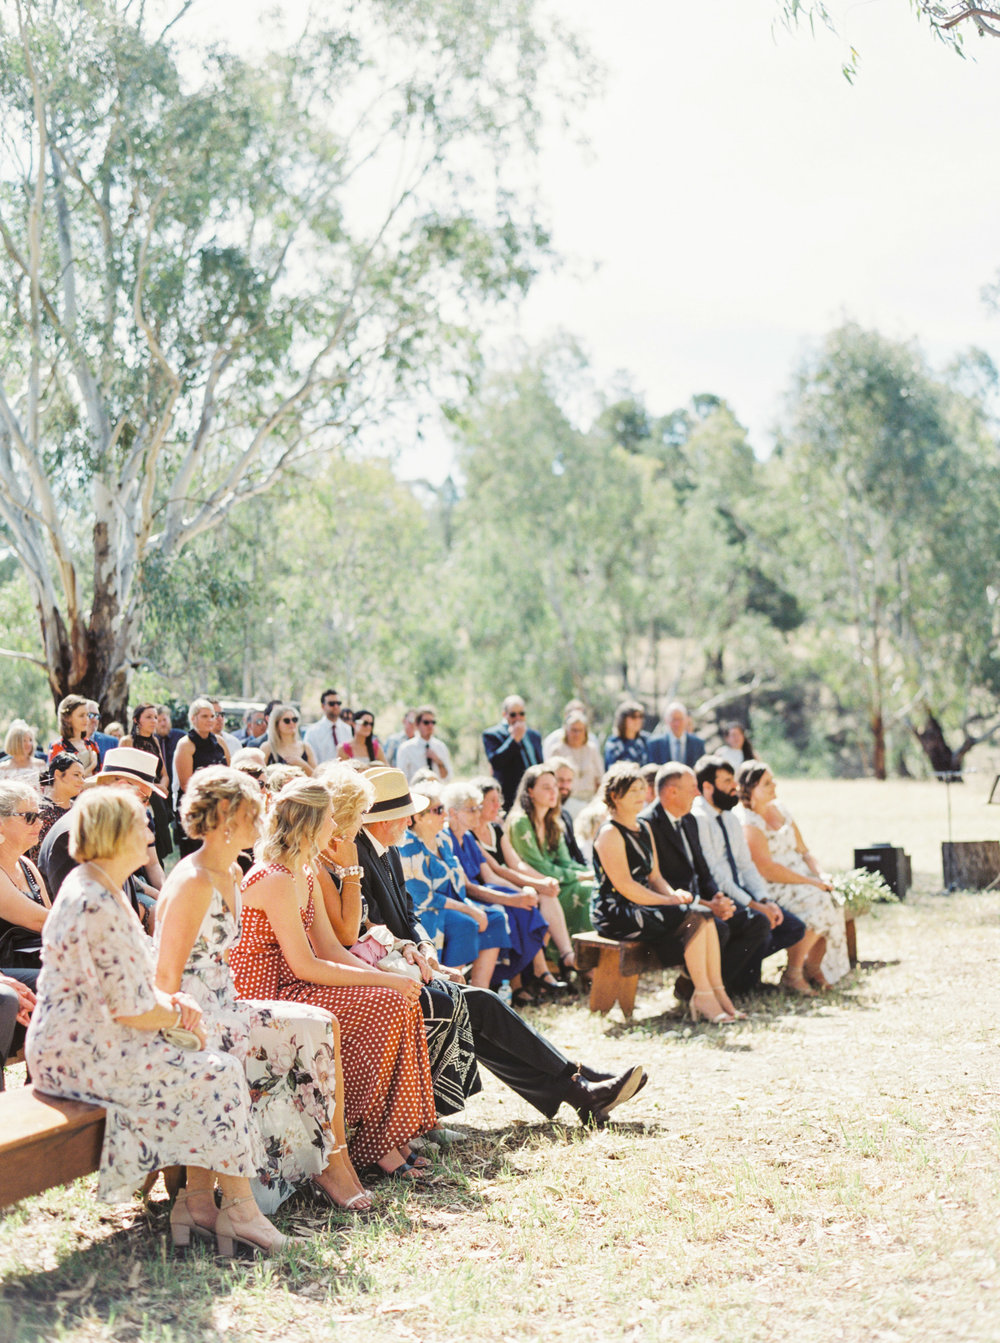 00028- Olive Tree Mediterranean Wedding in Mudgee NSW Australia Fine Art Film Wedding Lifestyle Photographer Sheri McMahon_.jpg